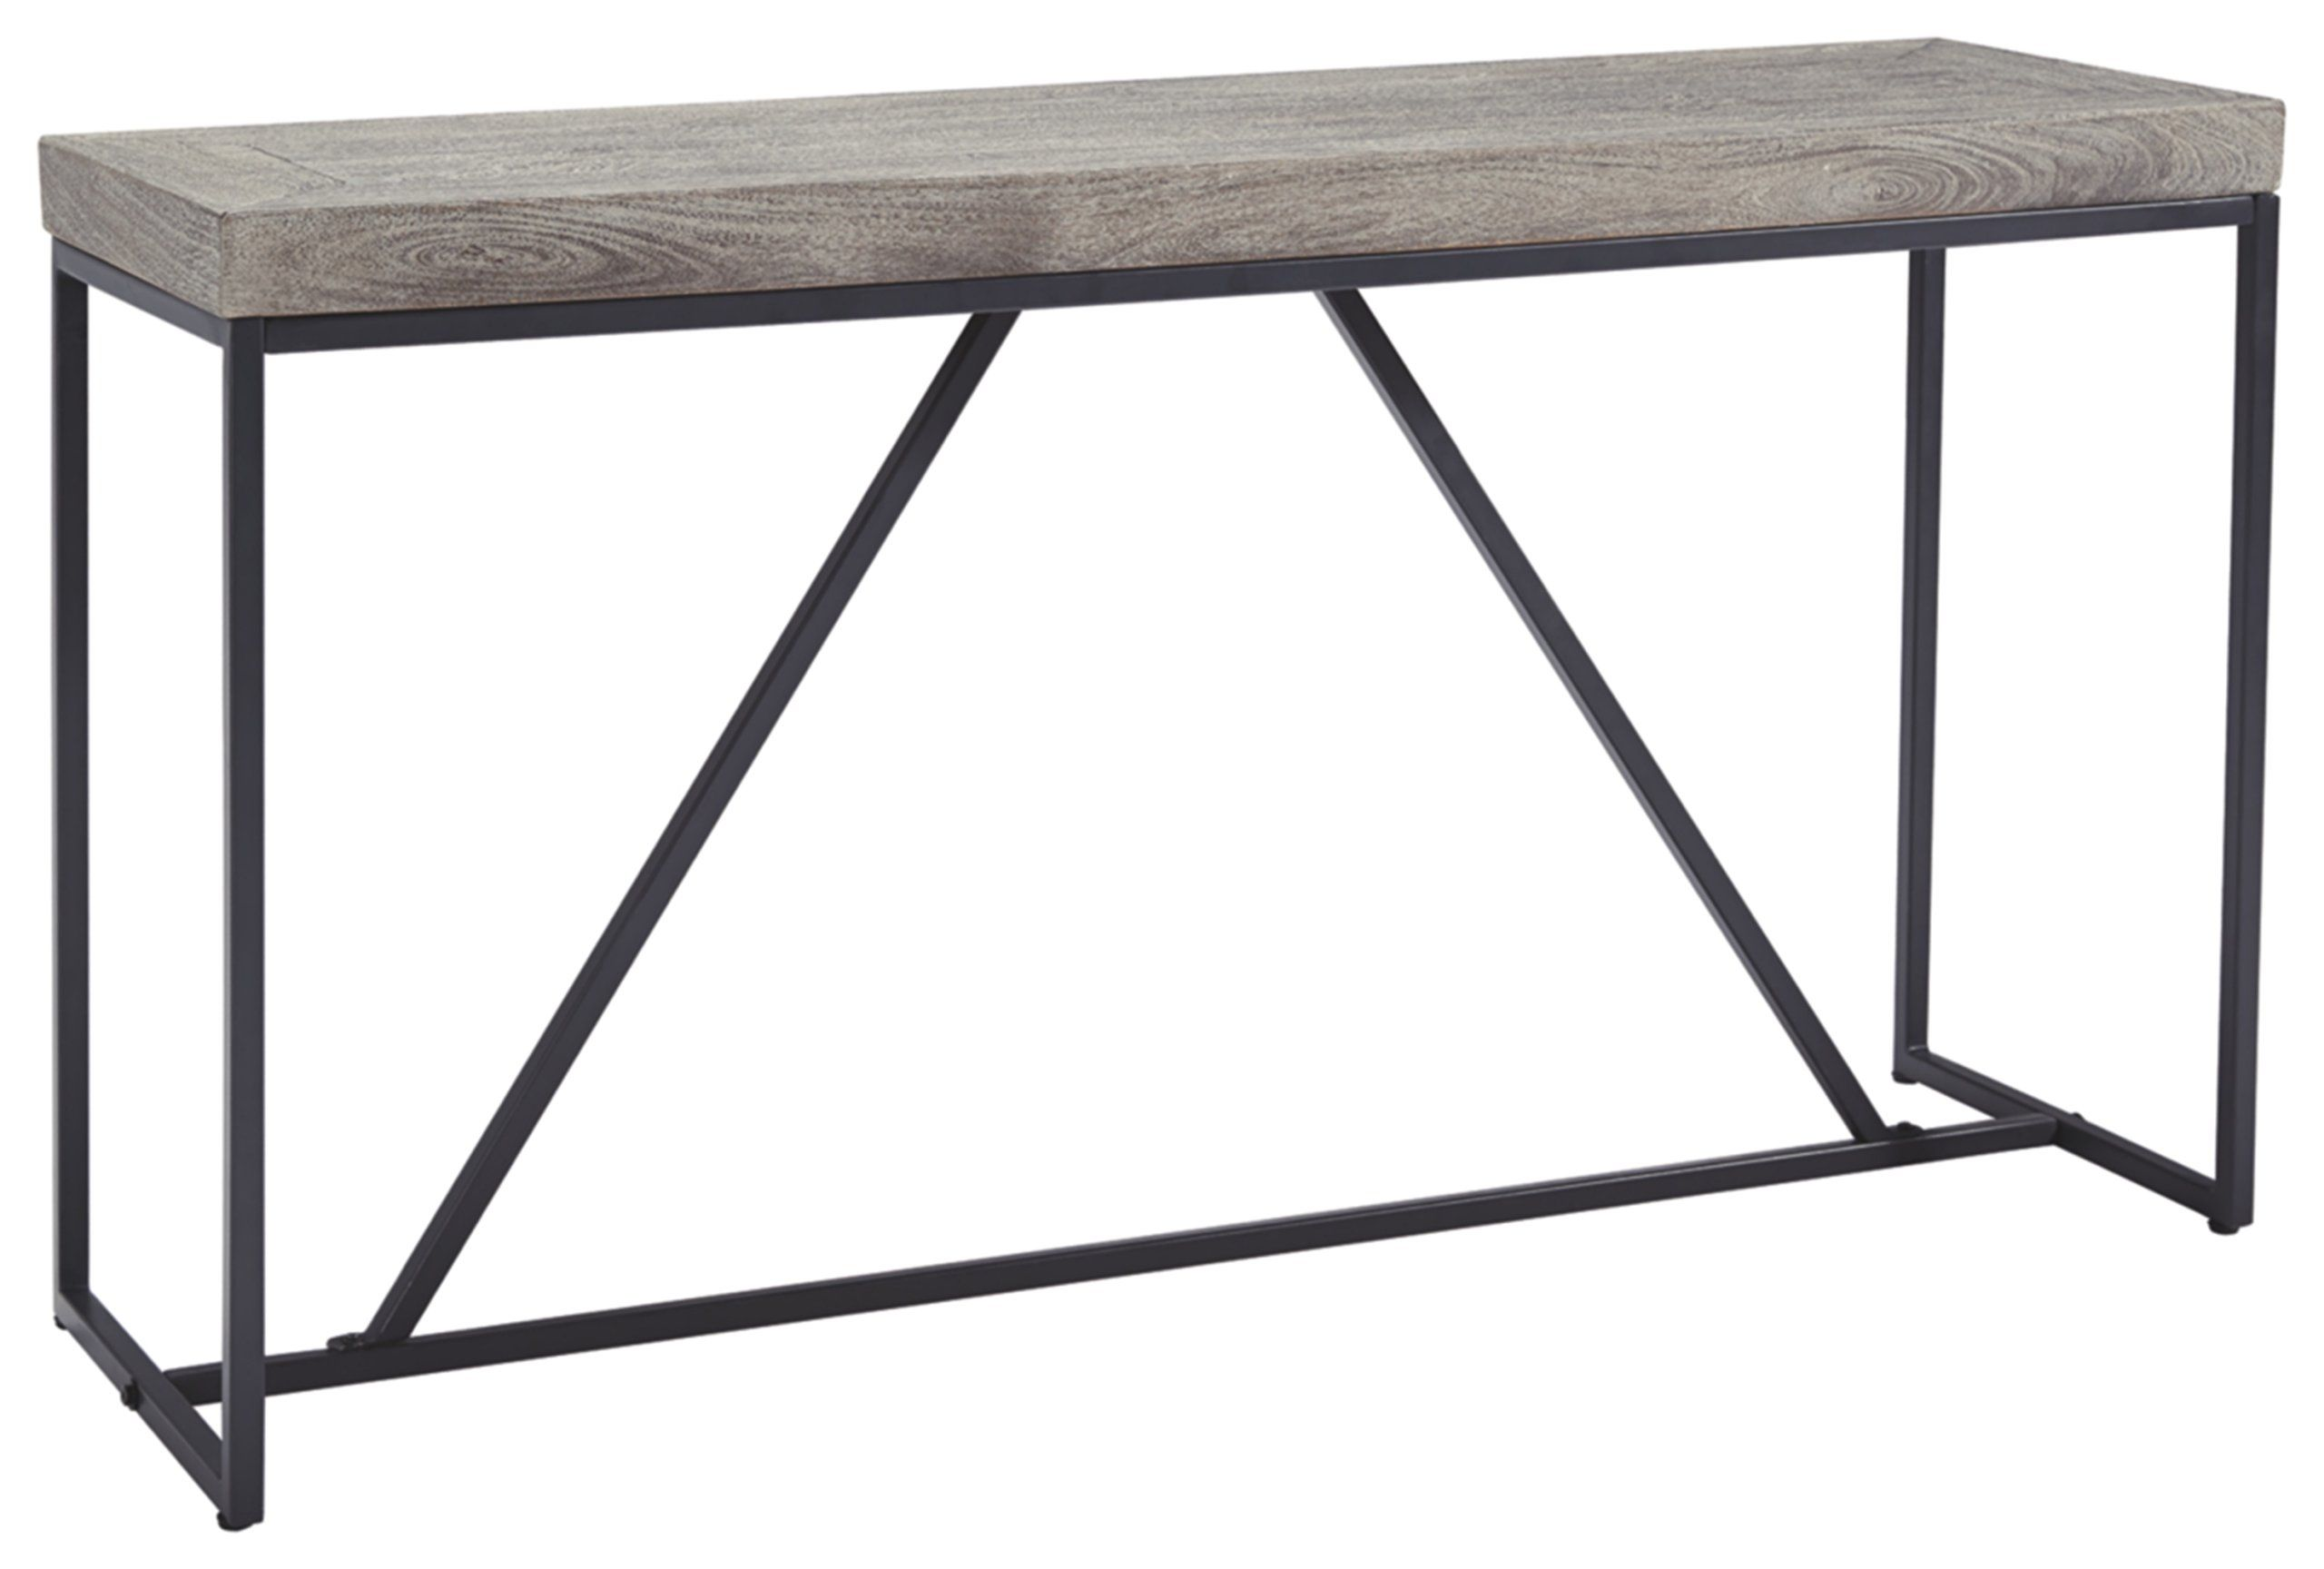 Ashley Furniture Signature Design Brazin Casual Sofa Or Console Table Gray You Can Find More Details By Diy Sofa Table Simple Sofa Table Ashley Furniture